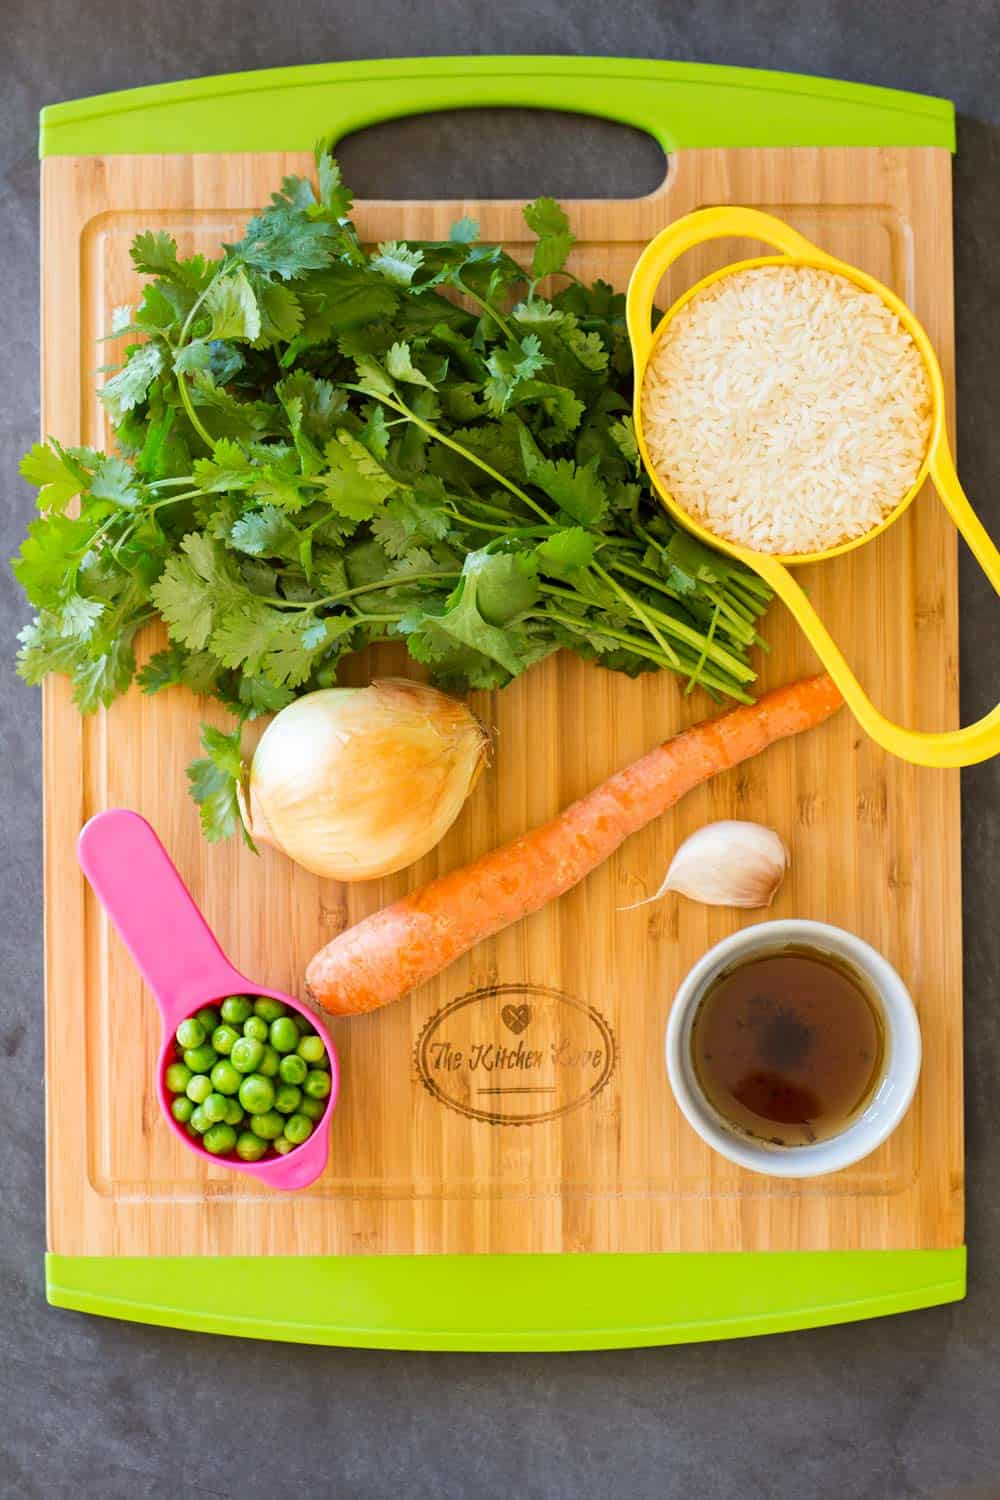 Fresh coriander, rice, broth, garlic, carrot, peas, and onion, on a wooden chopping board.